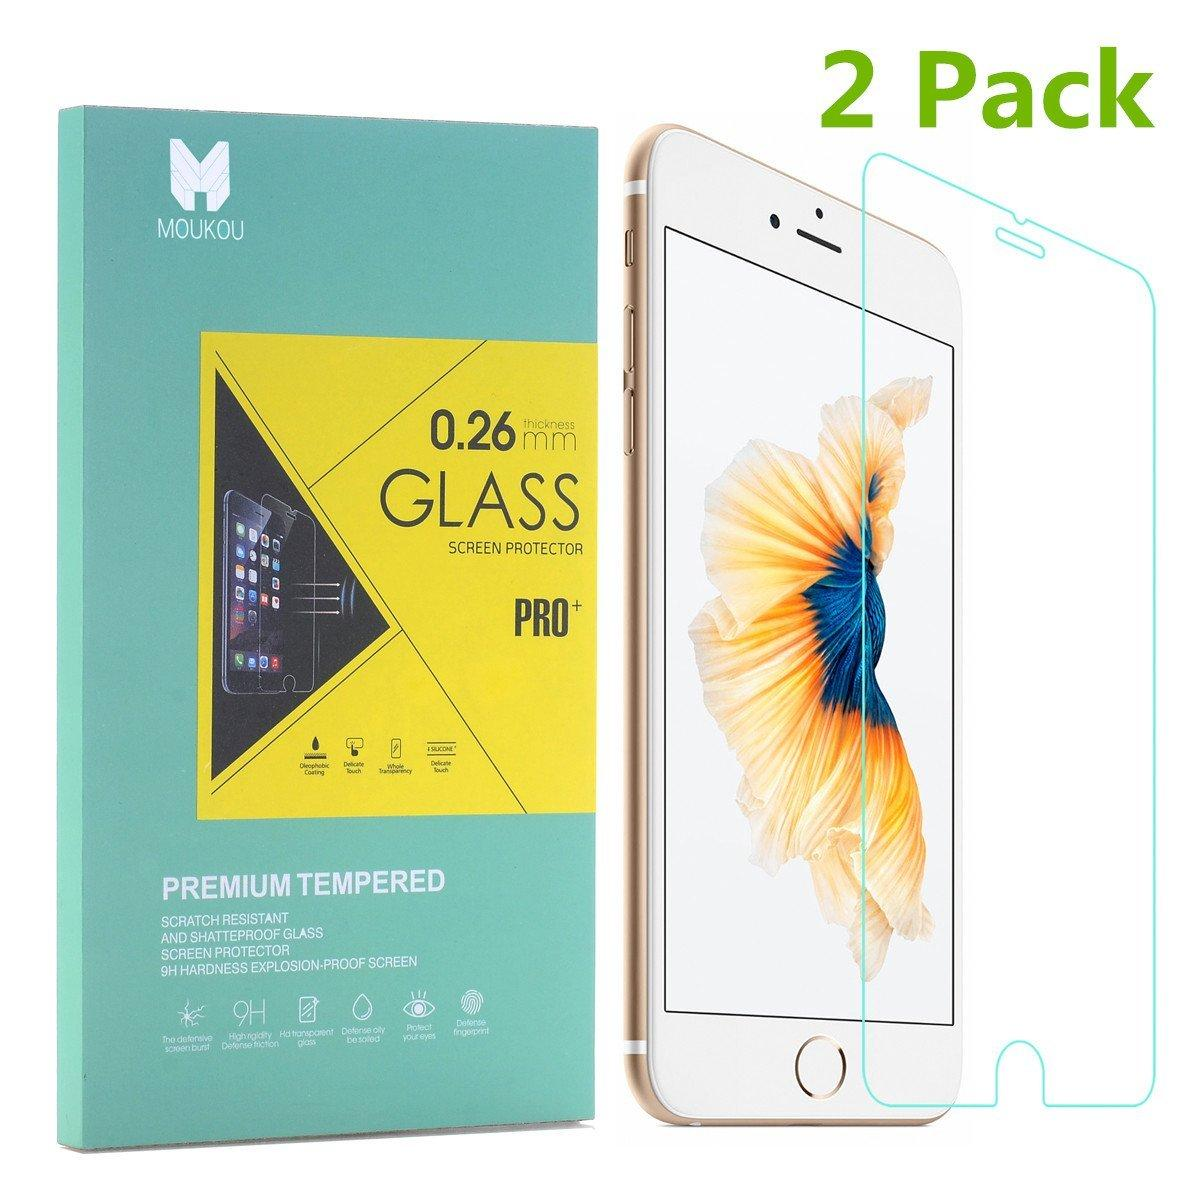 $2.99 MouKou iPhone 7/7Plus  Screen Protector Tempered Glass Screen Protectors 3-Pack Rounded Edges for iPhone 6/6s 4.7